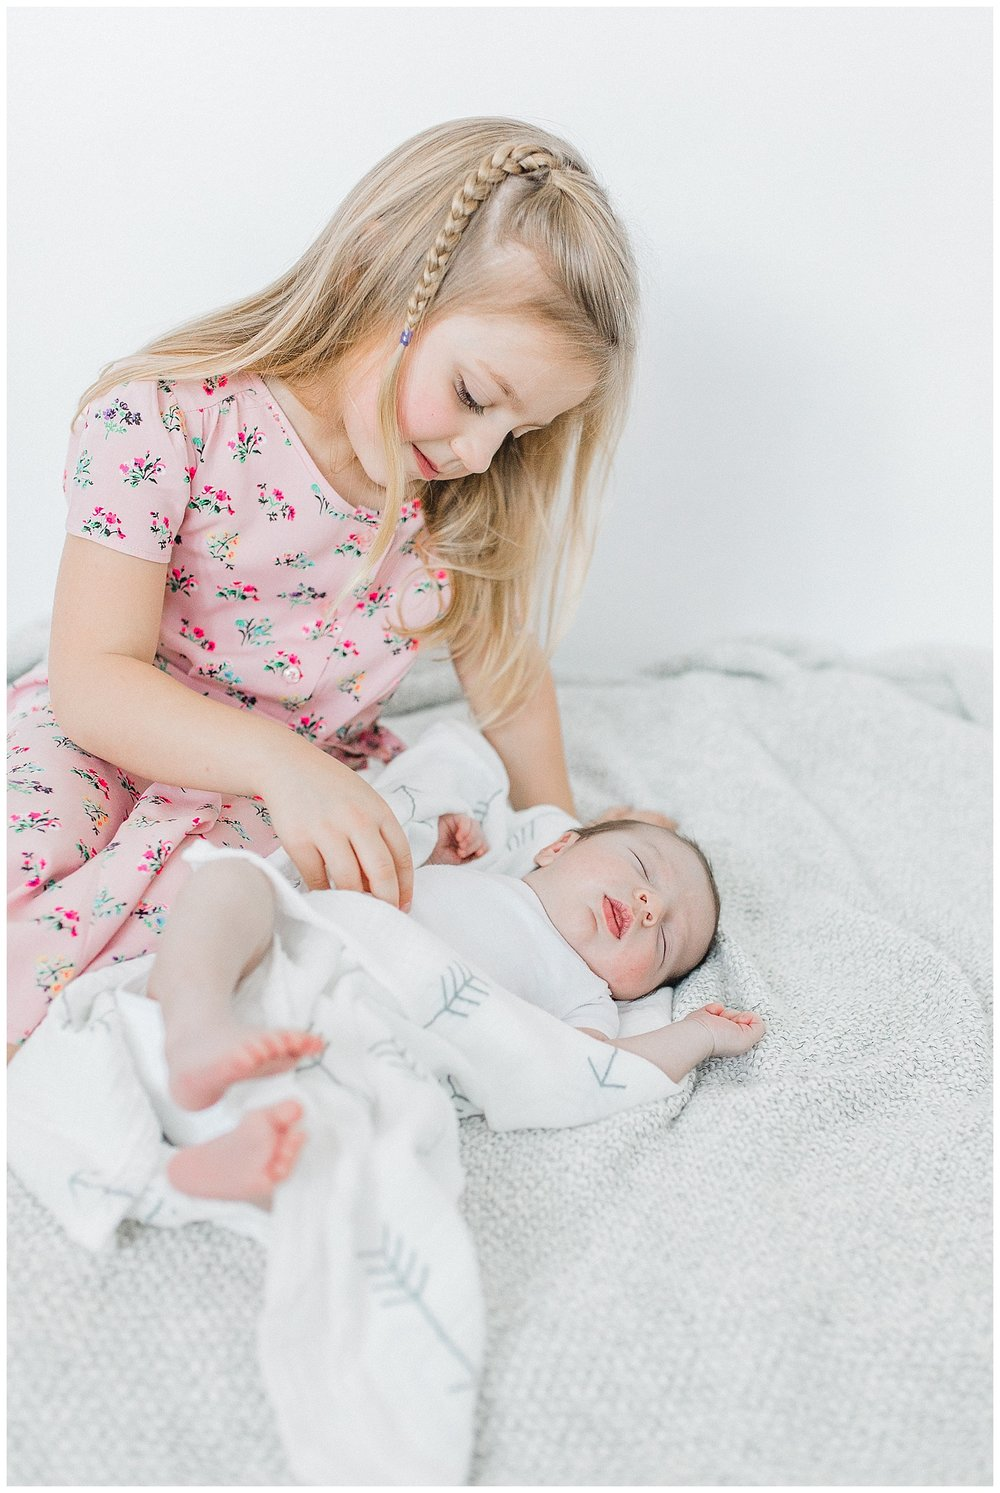 Newborn Lifestyle In-Studio Photo Session Light and Airy Kindred Presets Emma Rose Company Seattle Portland Wedding and Portrait Photographer17.jpg